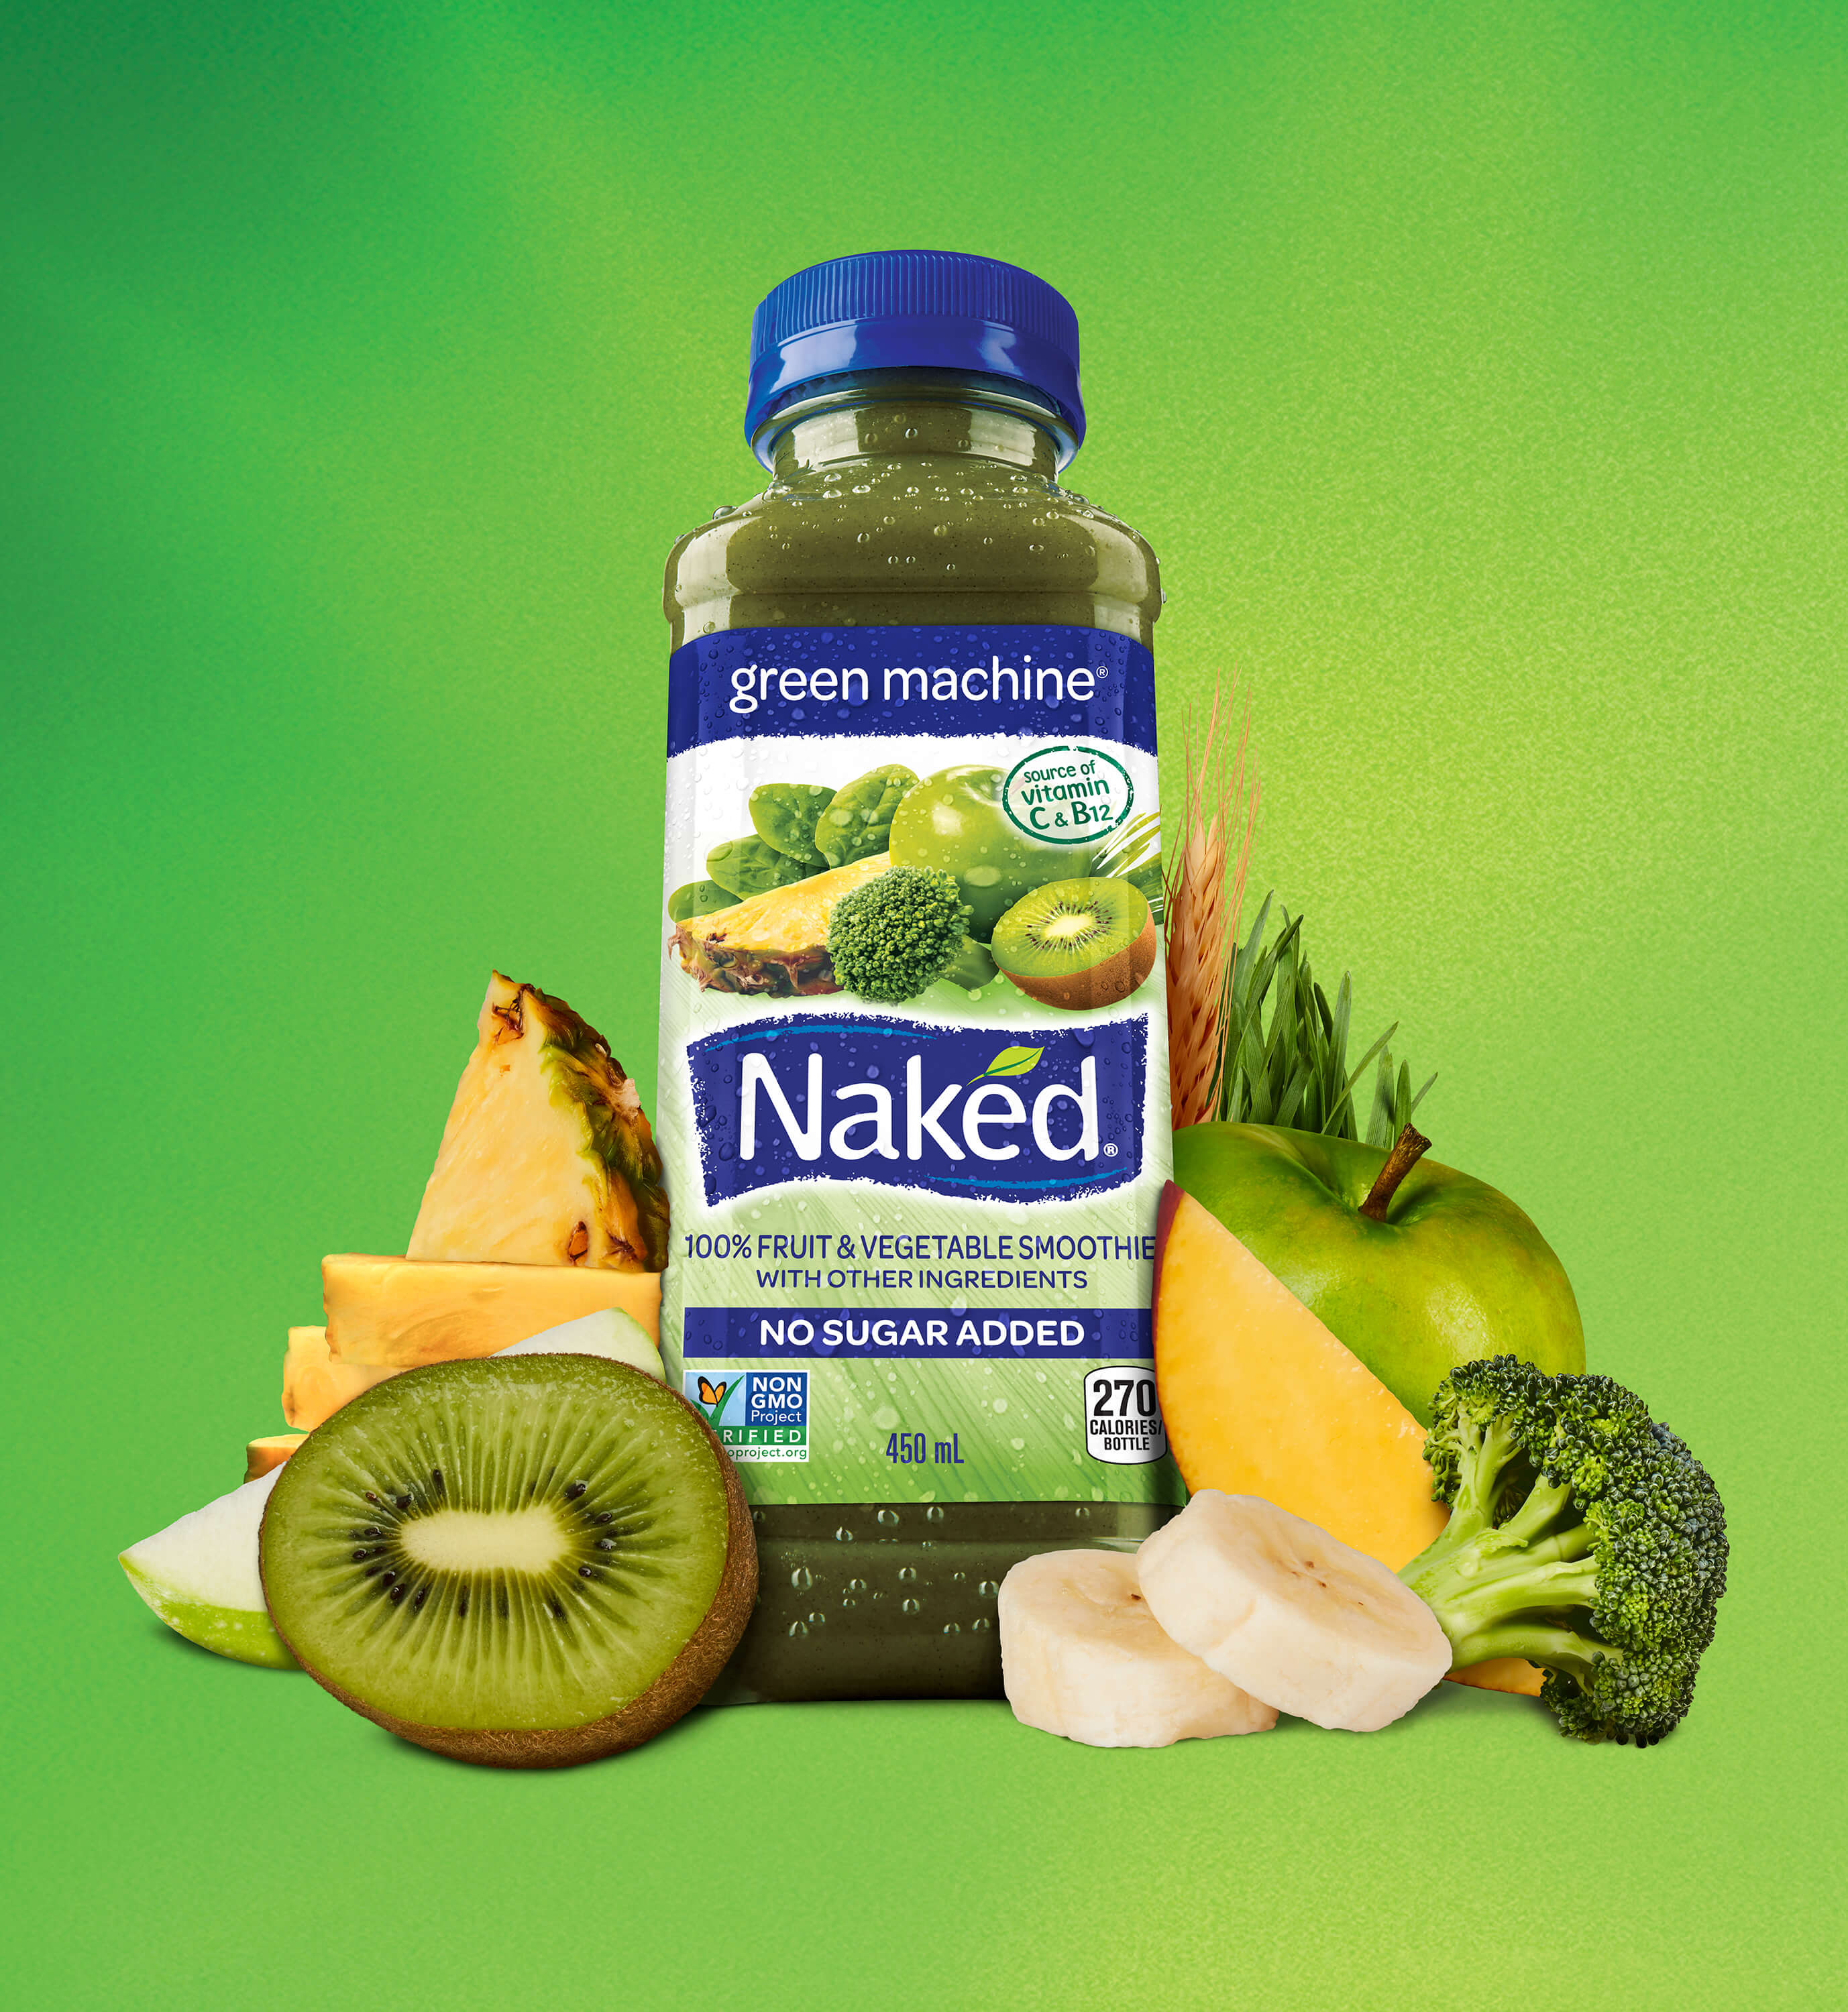 Unified Content, Unified Content Toronto, Aaron Cobb, Naked Juice, Smoothie, Healthy, Juice, Drink, Advertising, Healthy, Healthy choices, food, product, advertising, ad, green machine, green goddess,